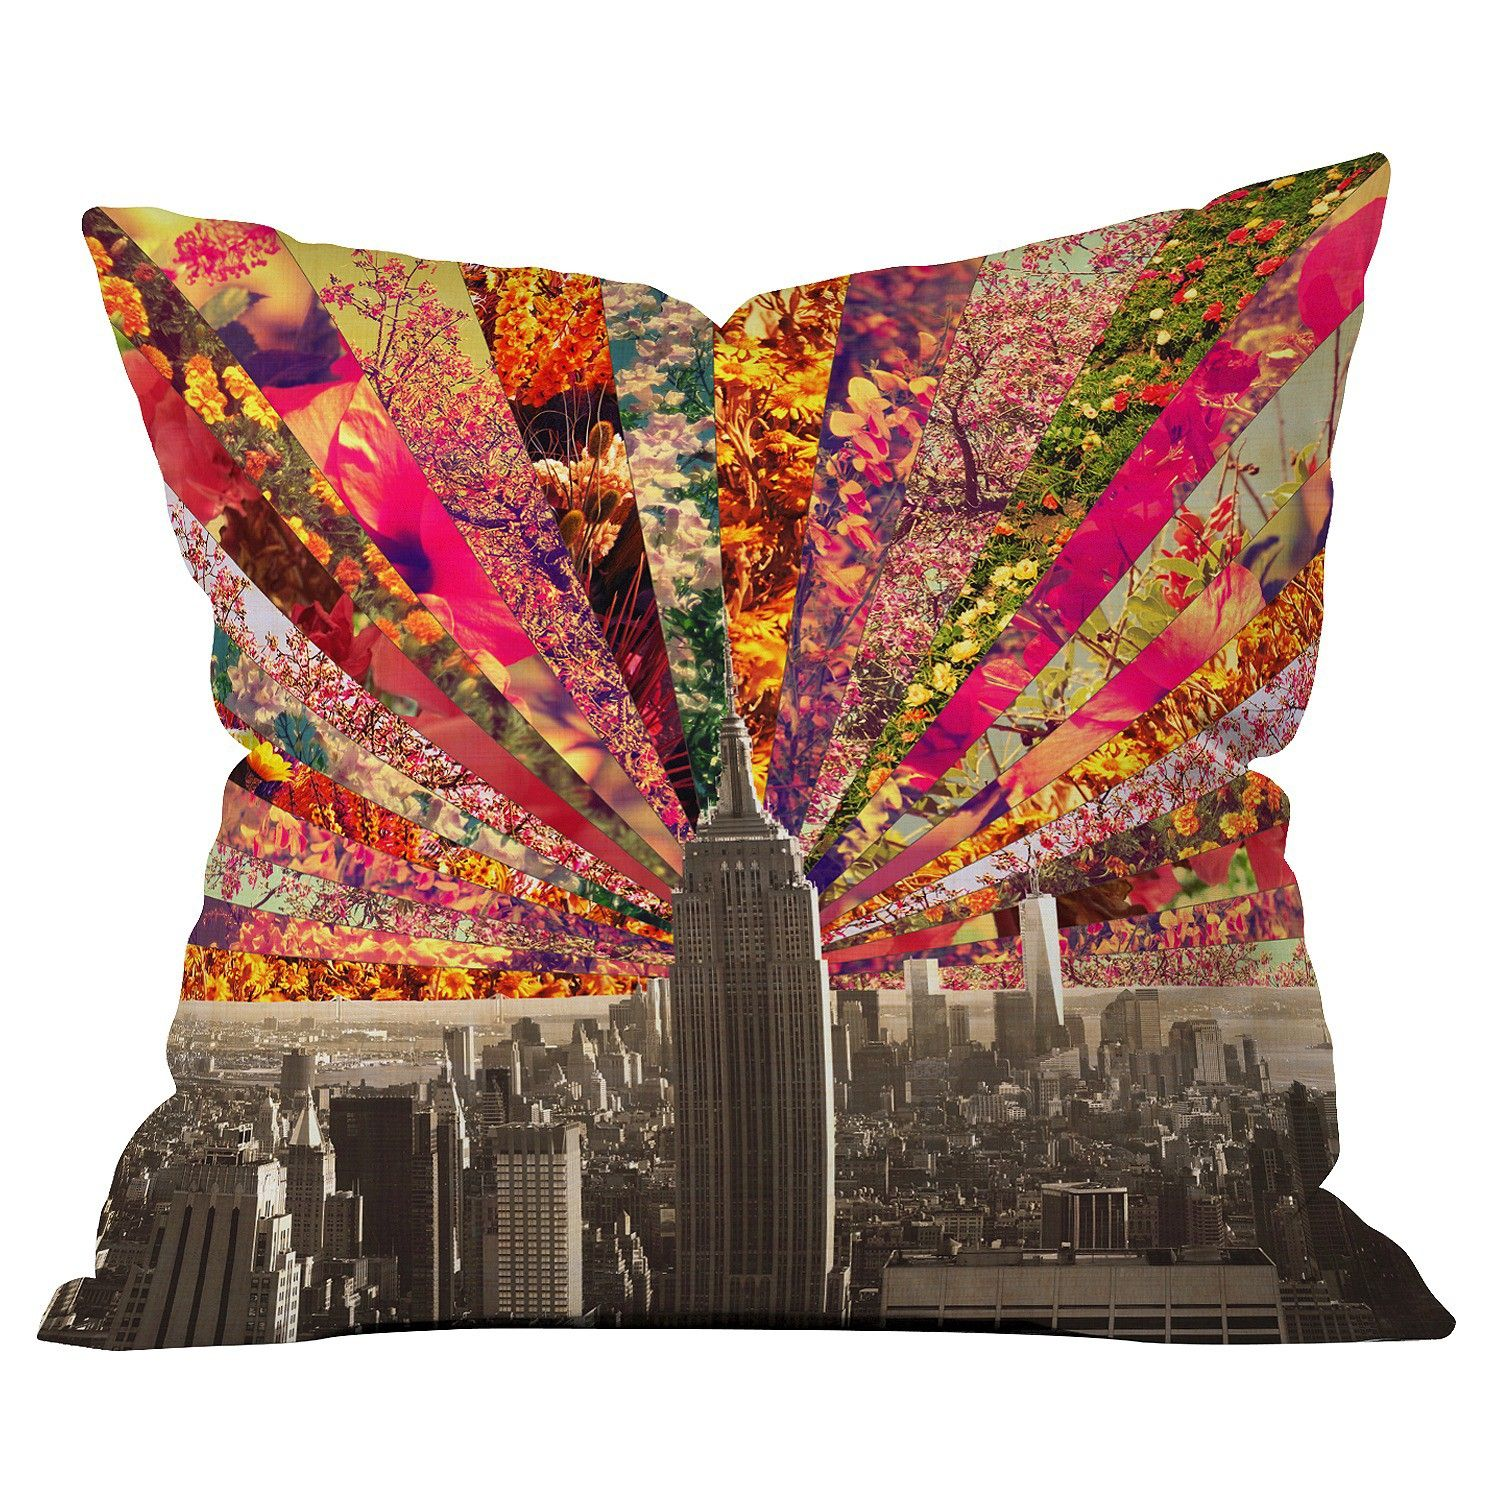 DENY Designs Blooming NY Throw Pillow : Target